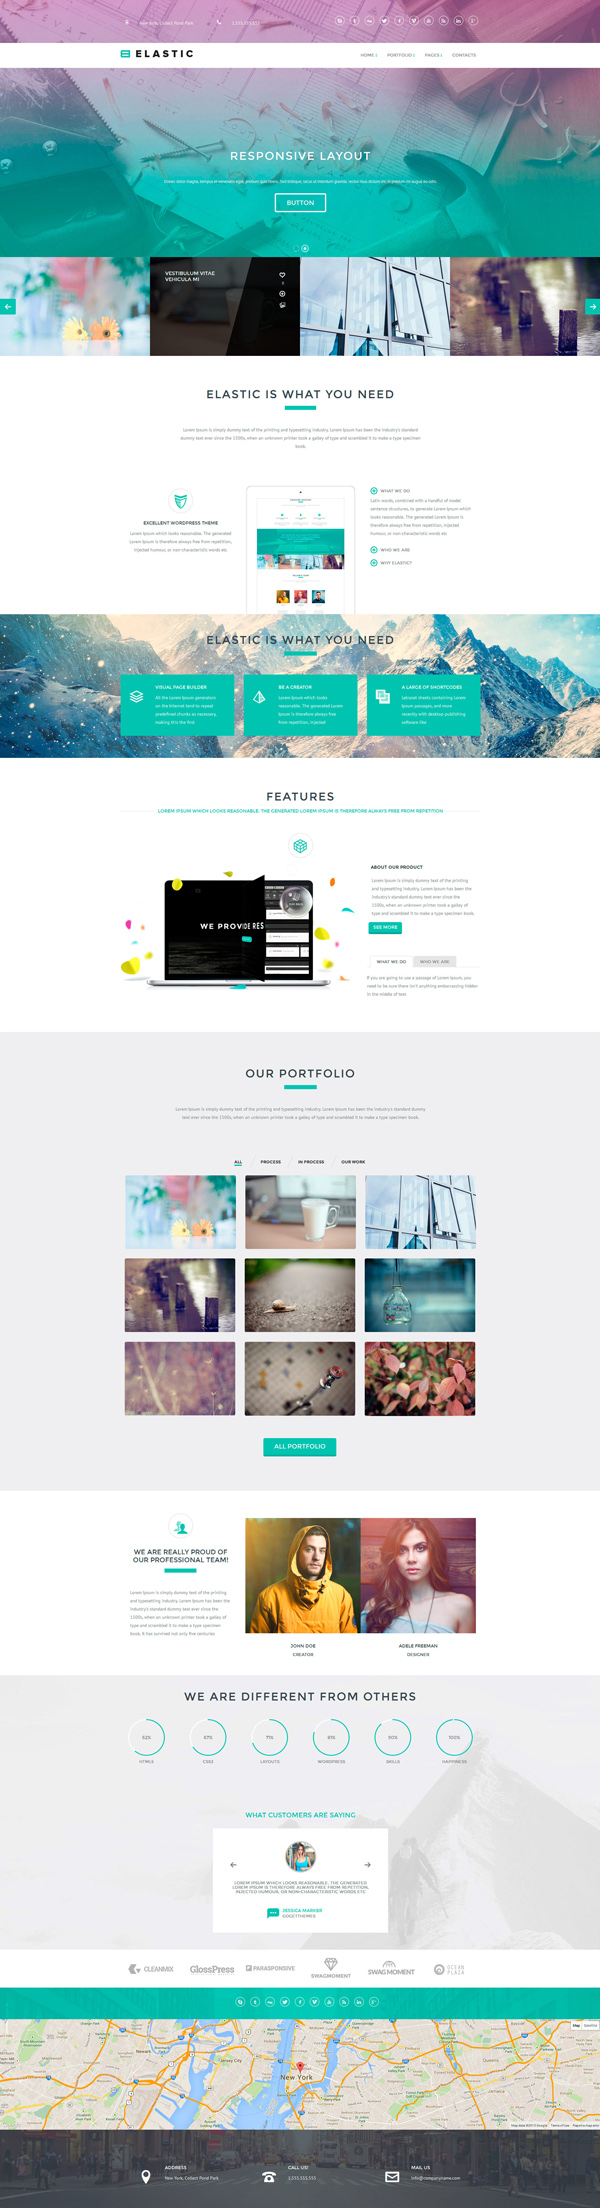 Elastic - WordPress Theme and Page Builder